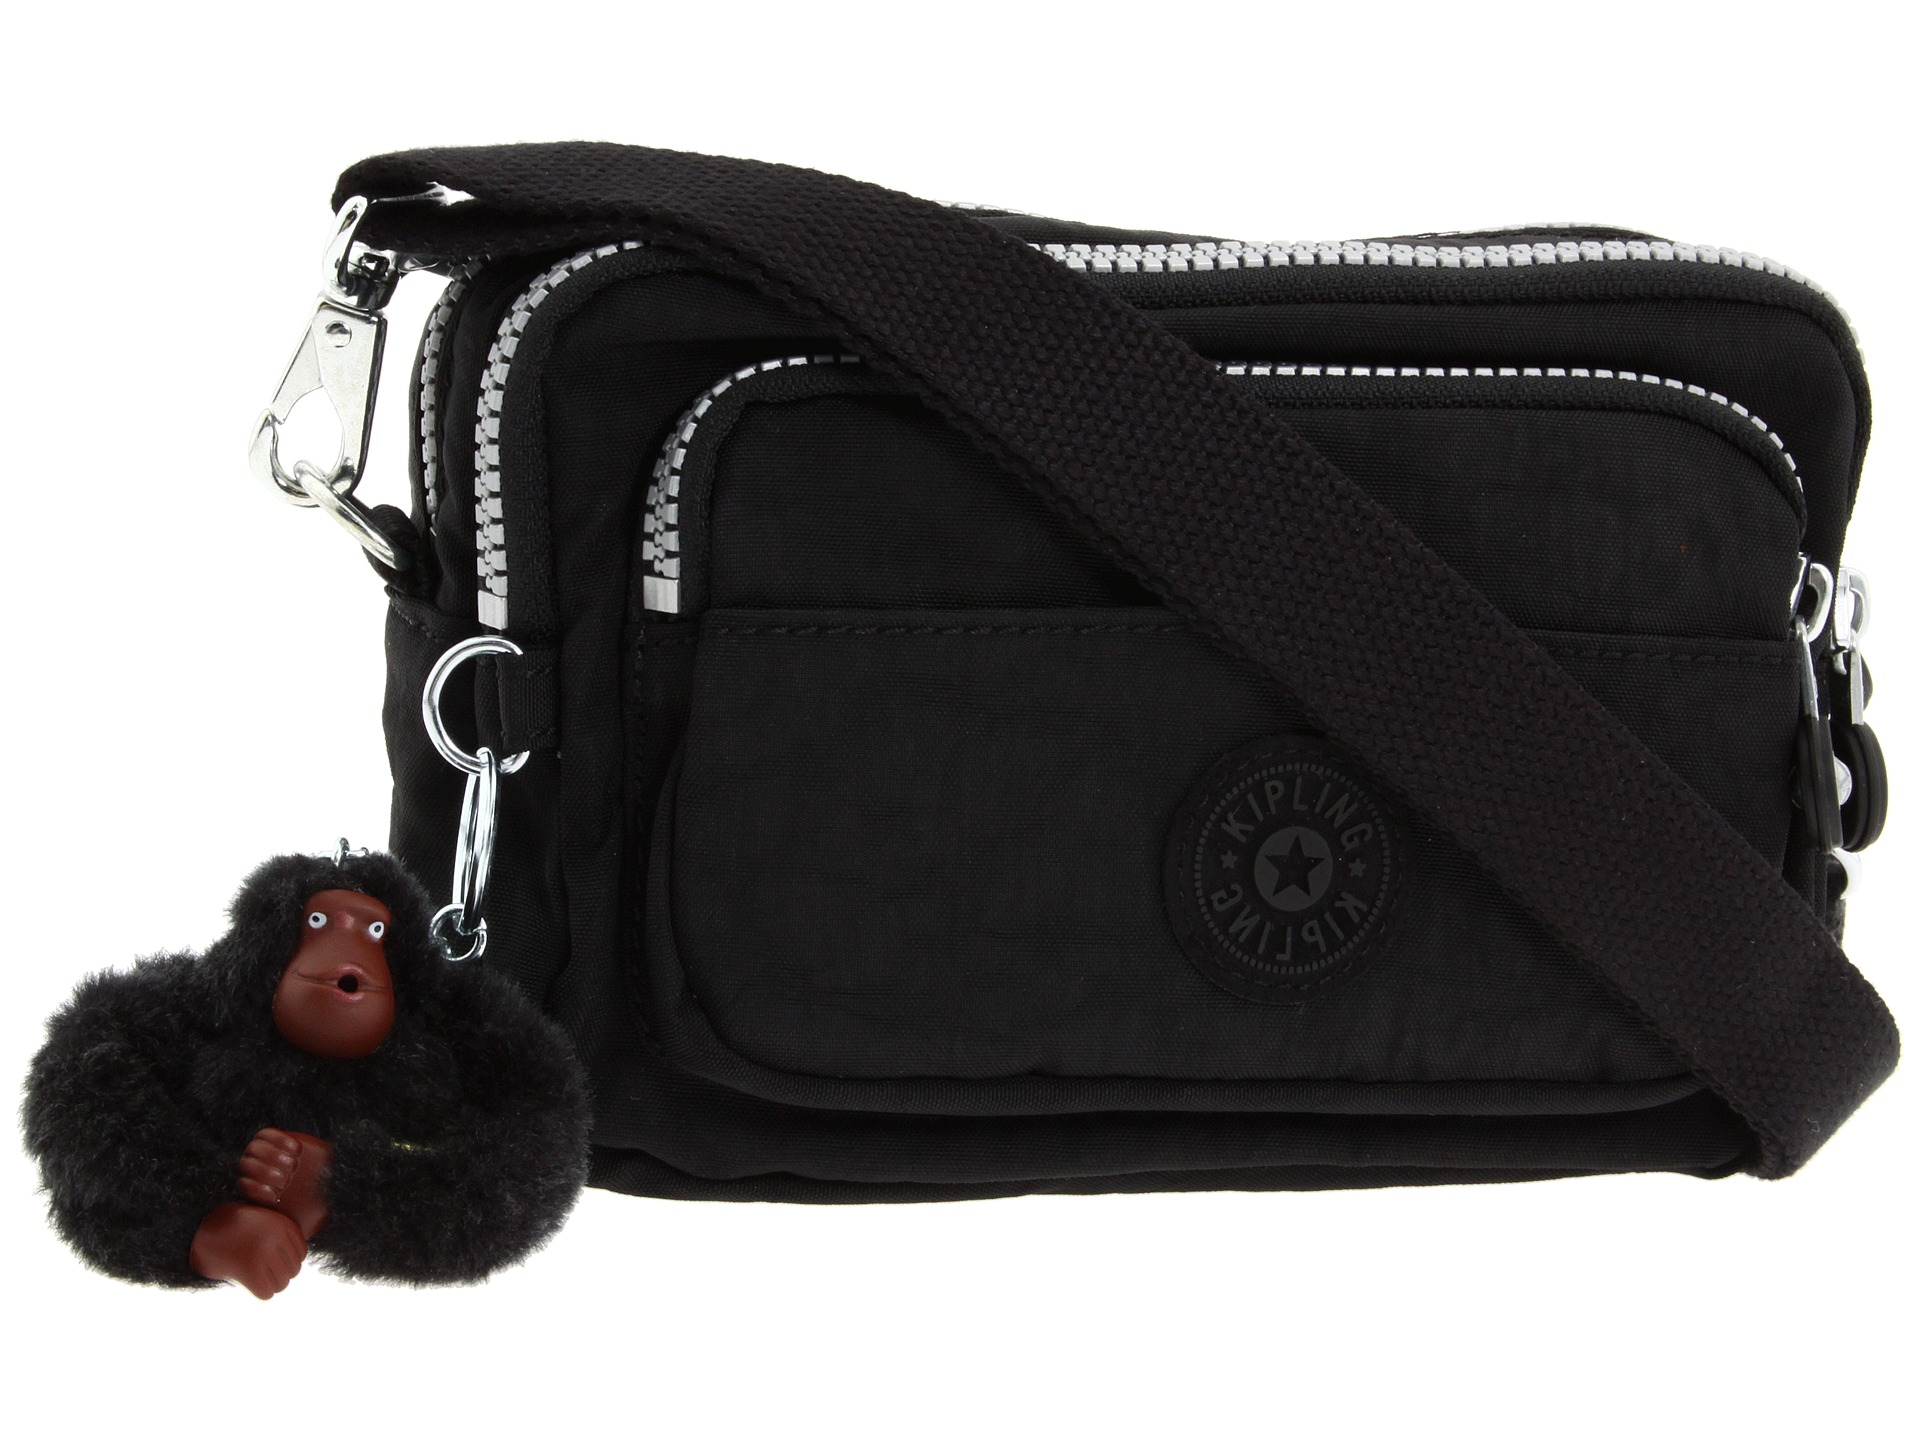 Product Description This versatile new cross-body bag is a trendy style for young girls on.